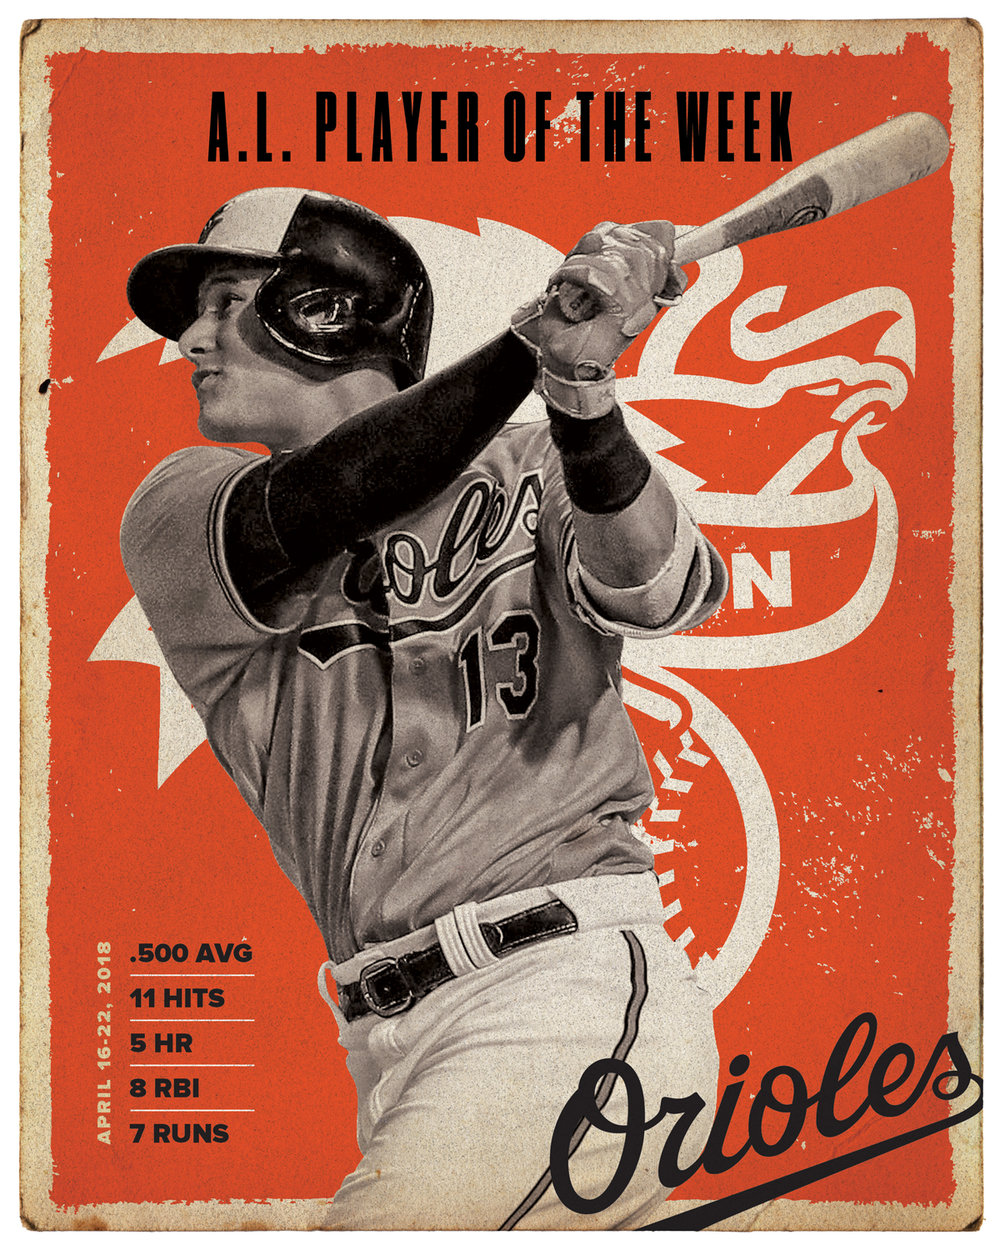 Machado_AL-Player-of-the-Week_v2.jpg